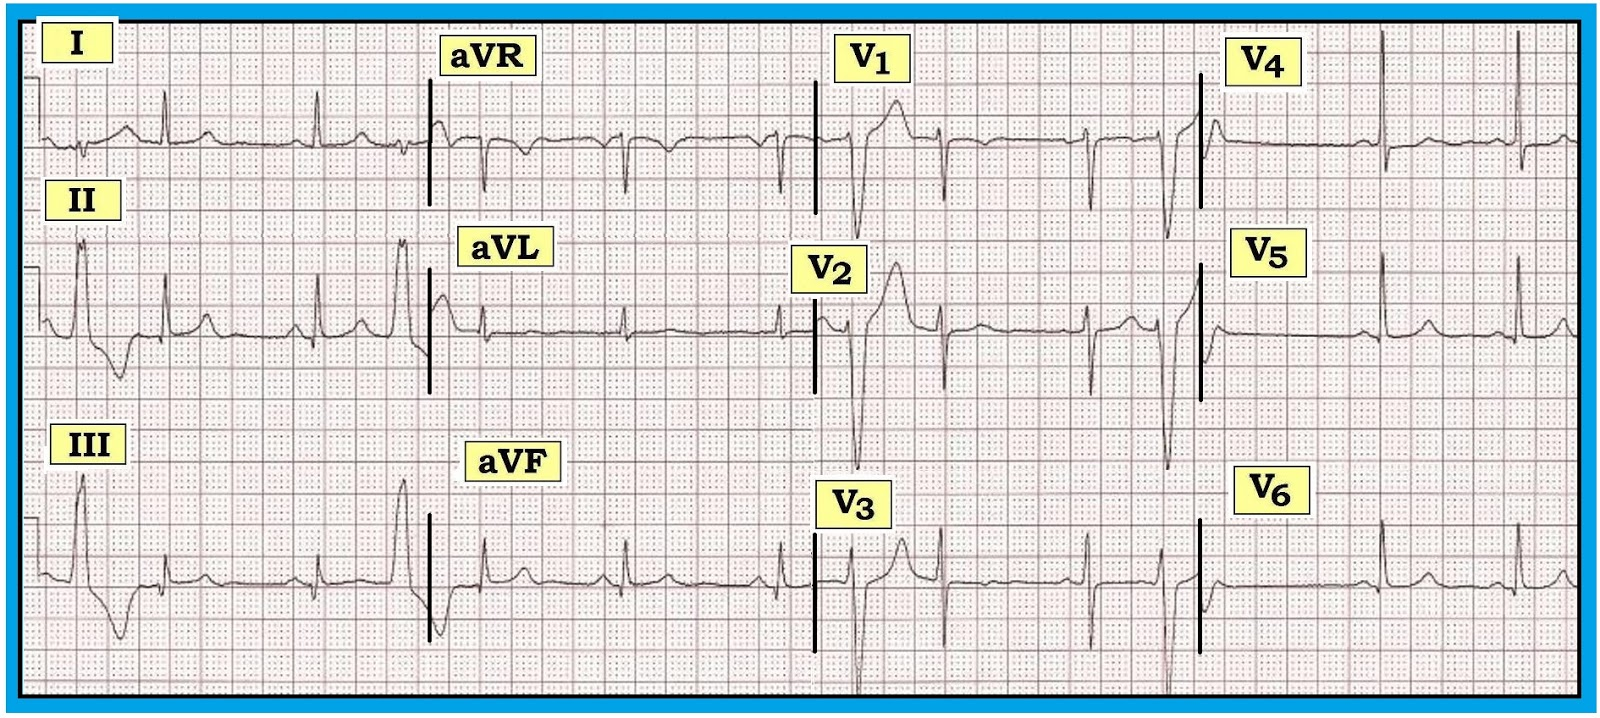 ecg recognition Posterior mi recognition oct 1st, 2015 manuel celedon the standard ecg lead placement cannot directly illustrate what is occurring in the posterior heart.